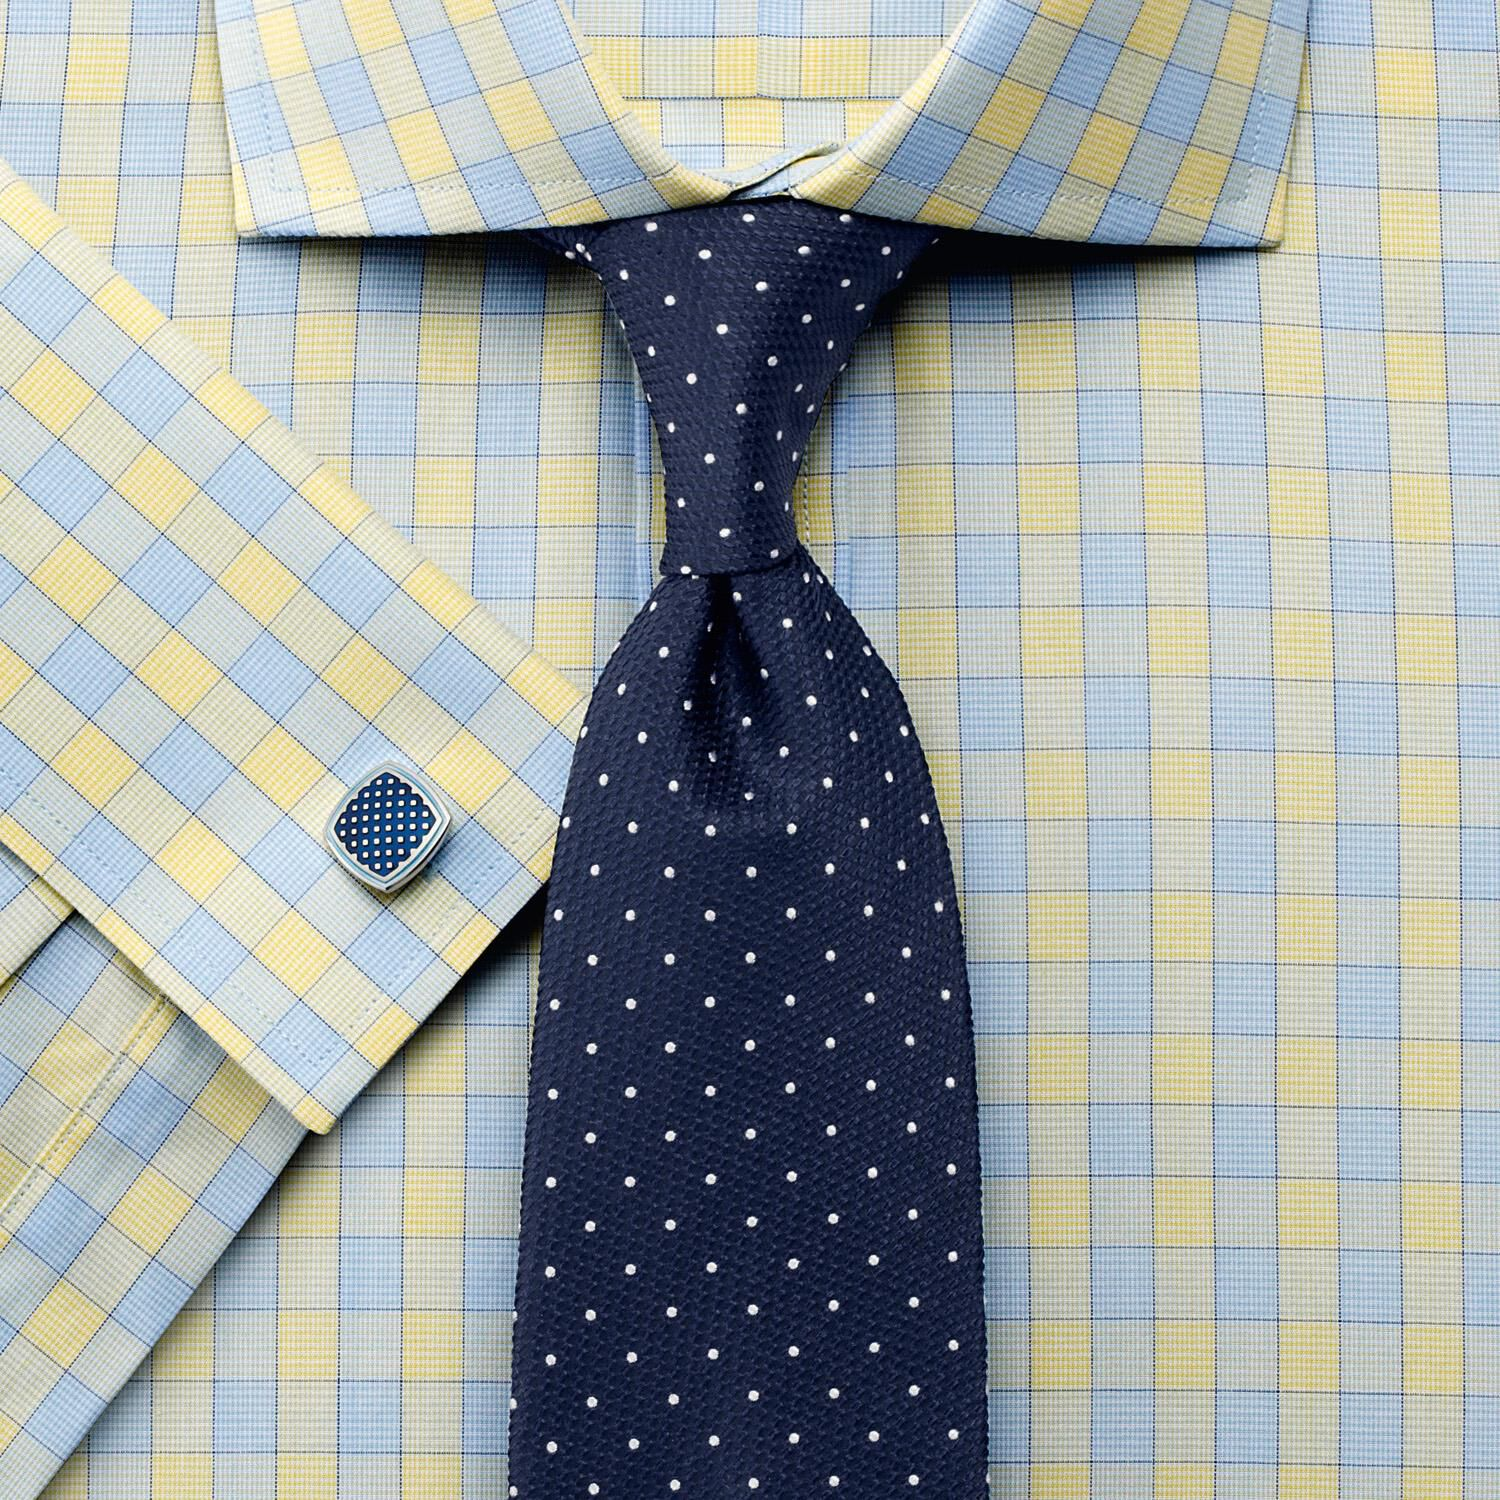 Slim Fit City Gingham Cutaway Yellow Cotton Formal Shirt Double Cuff Size 16.5/35 by Charles Tyrwhit